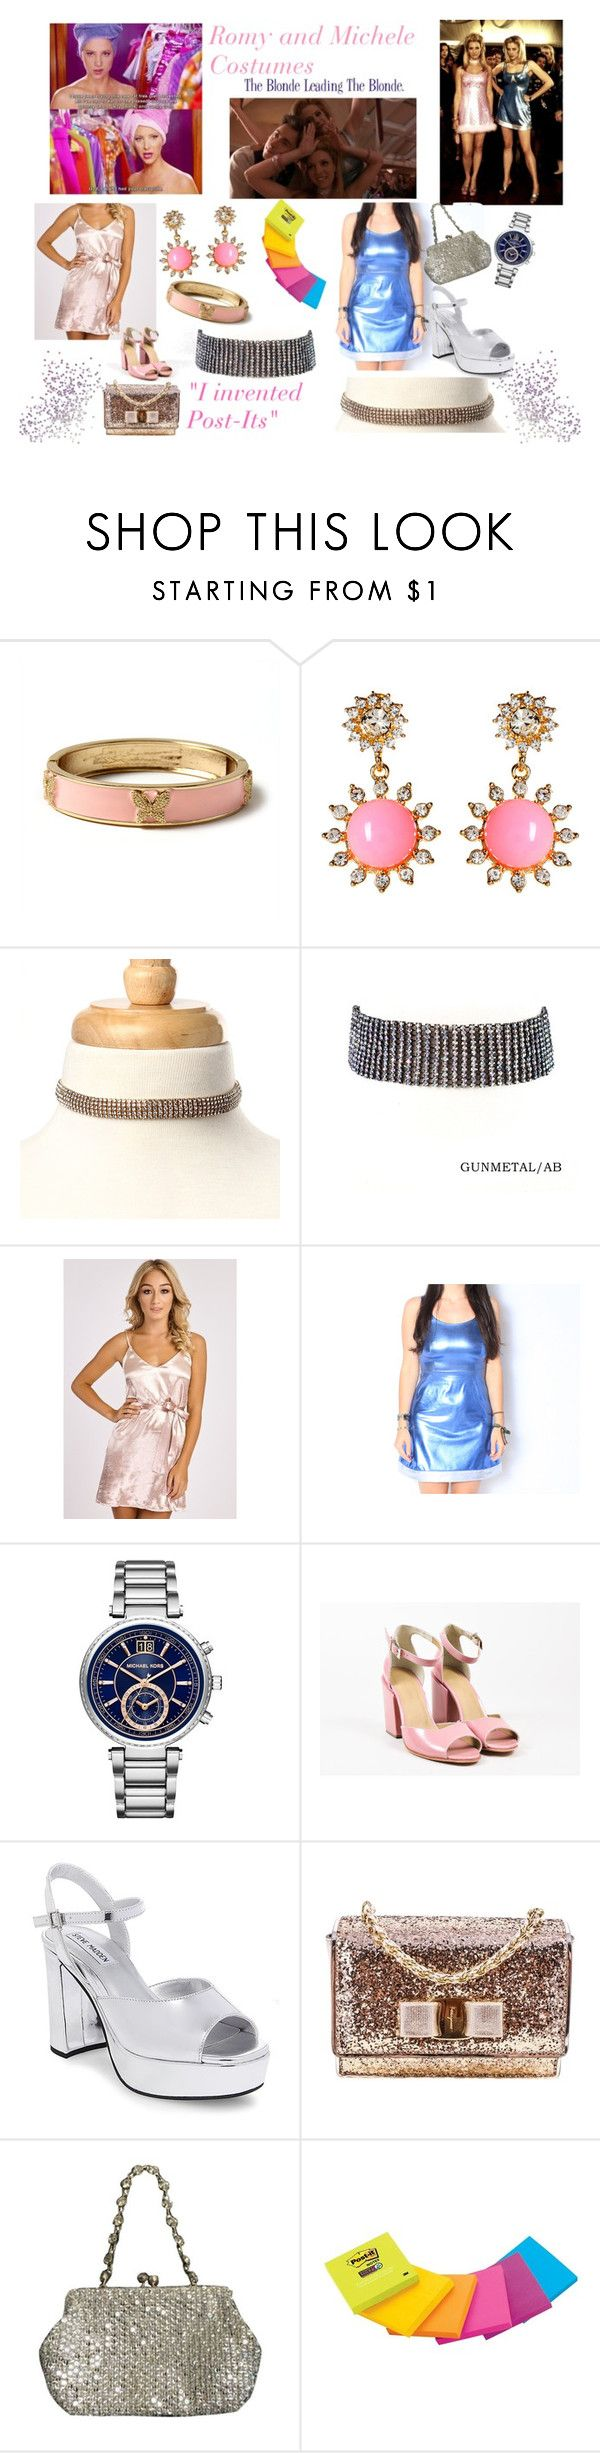 """Romy and Michele Costume"" by amritasinghjewelry on Polyvore featuring Amrita Singh, Michael Kors, Salvatore Ferragamo and Valentino"